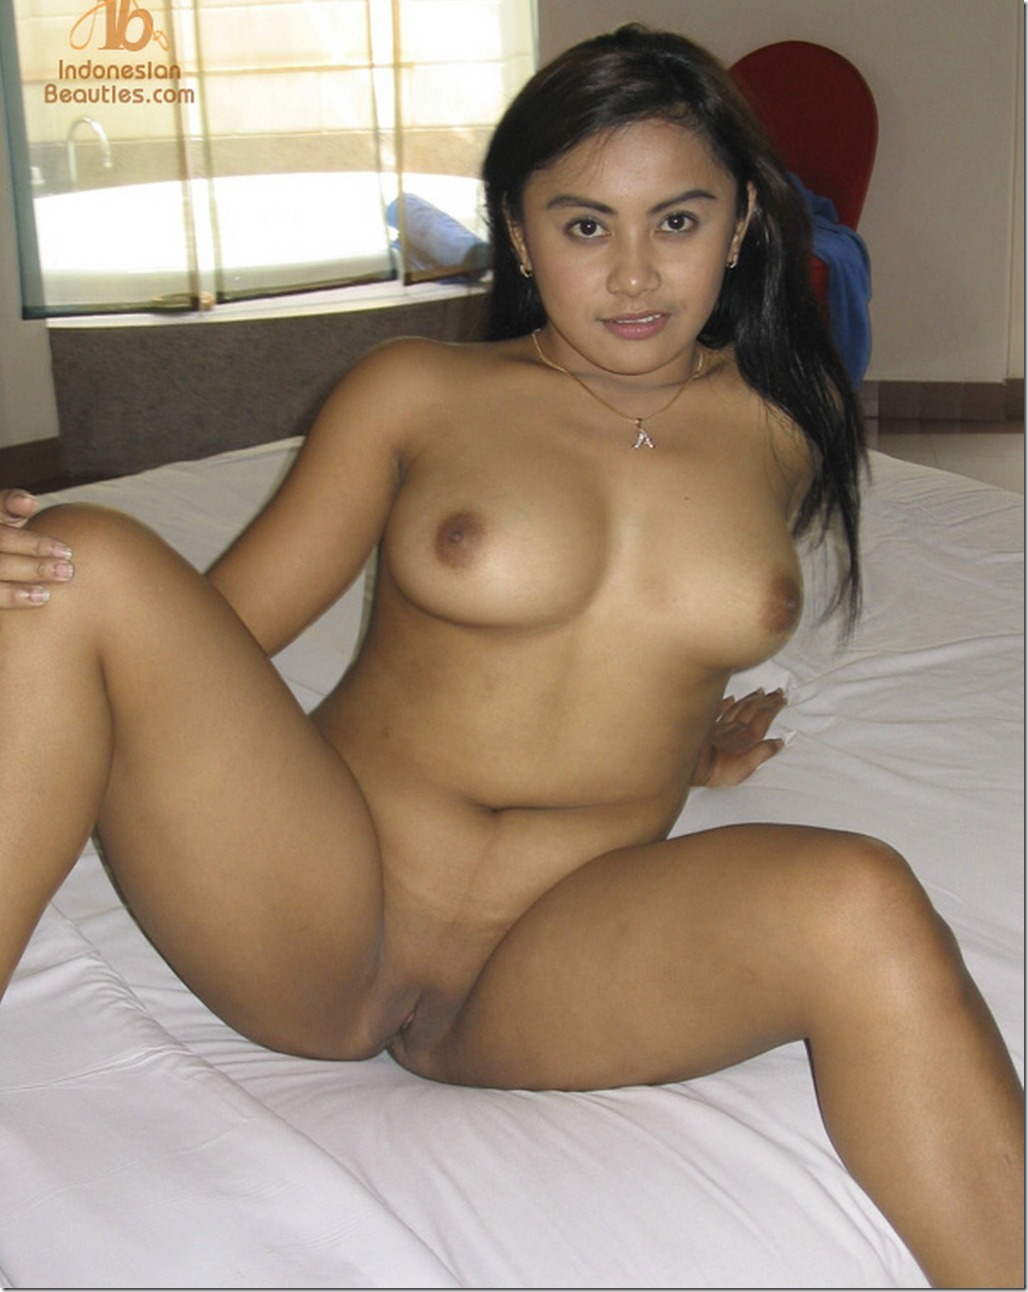 from Jaxton porn sex girl indonesia